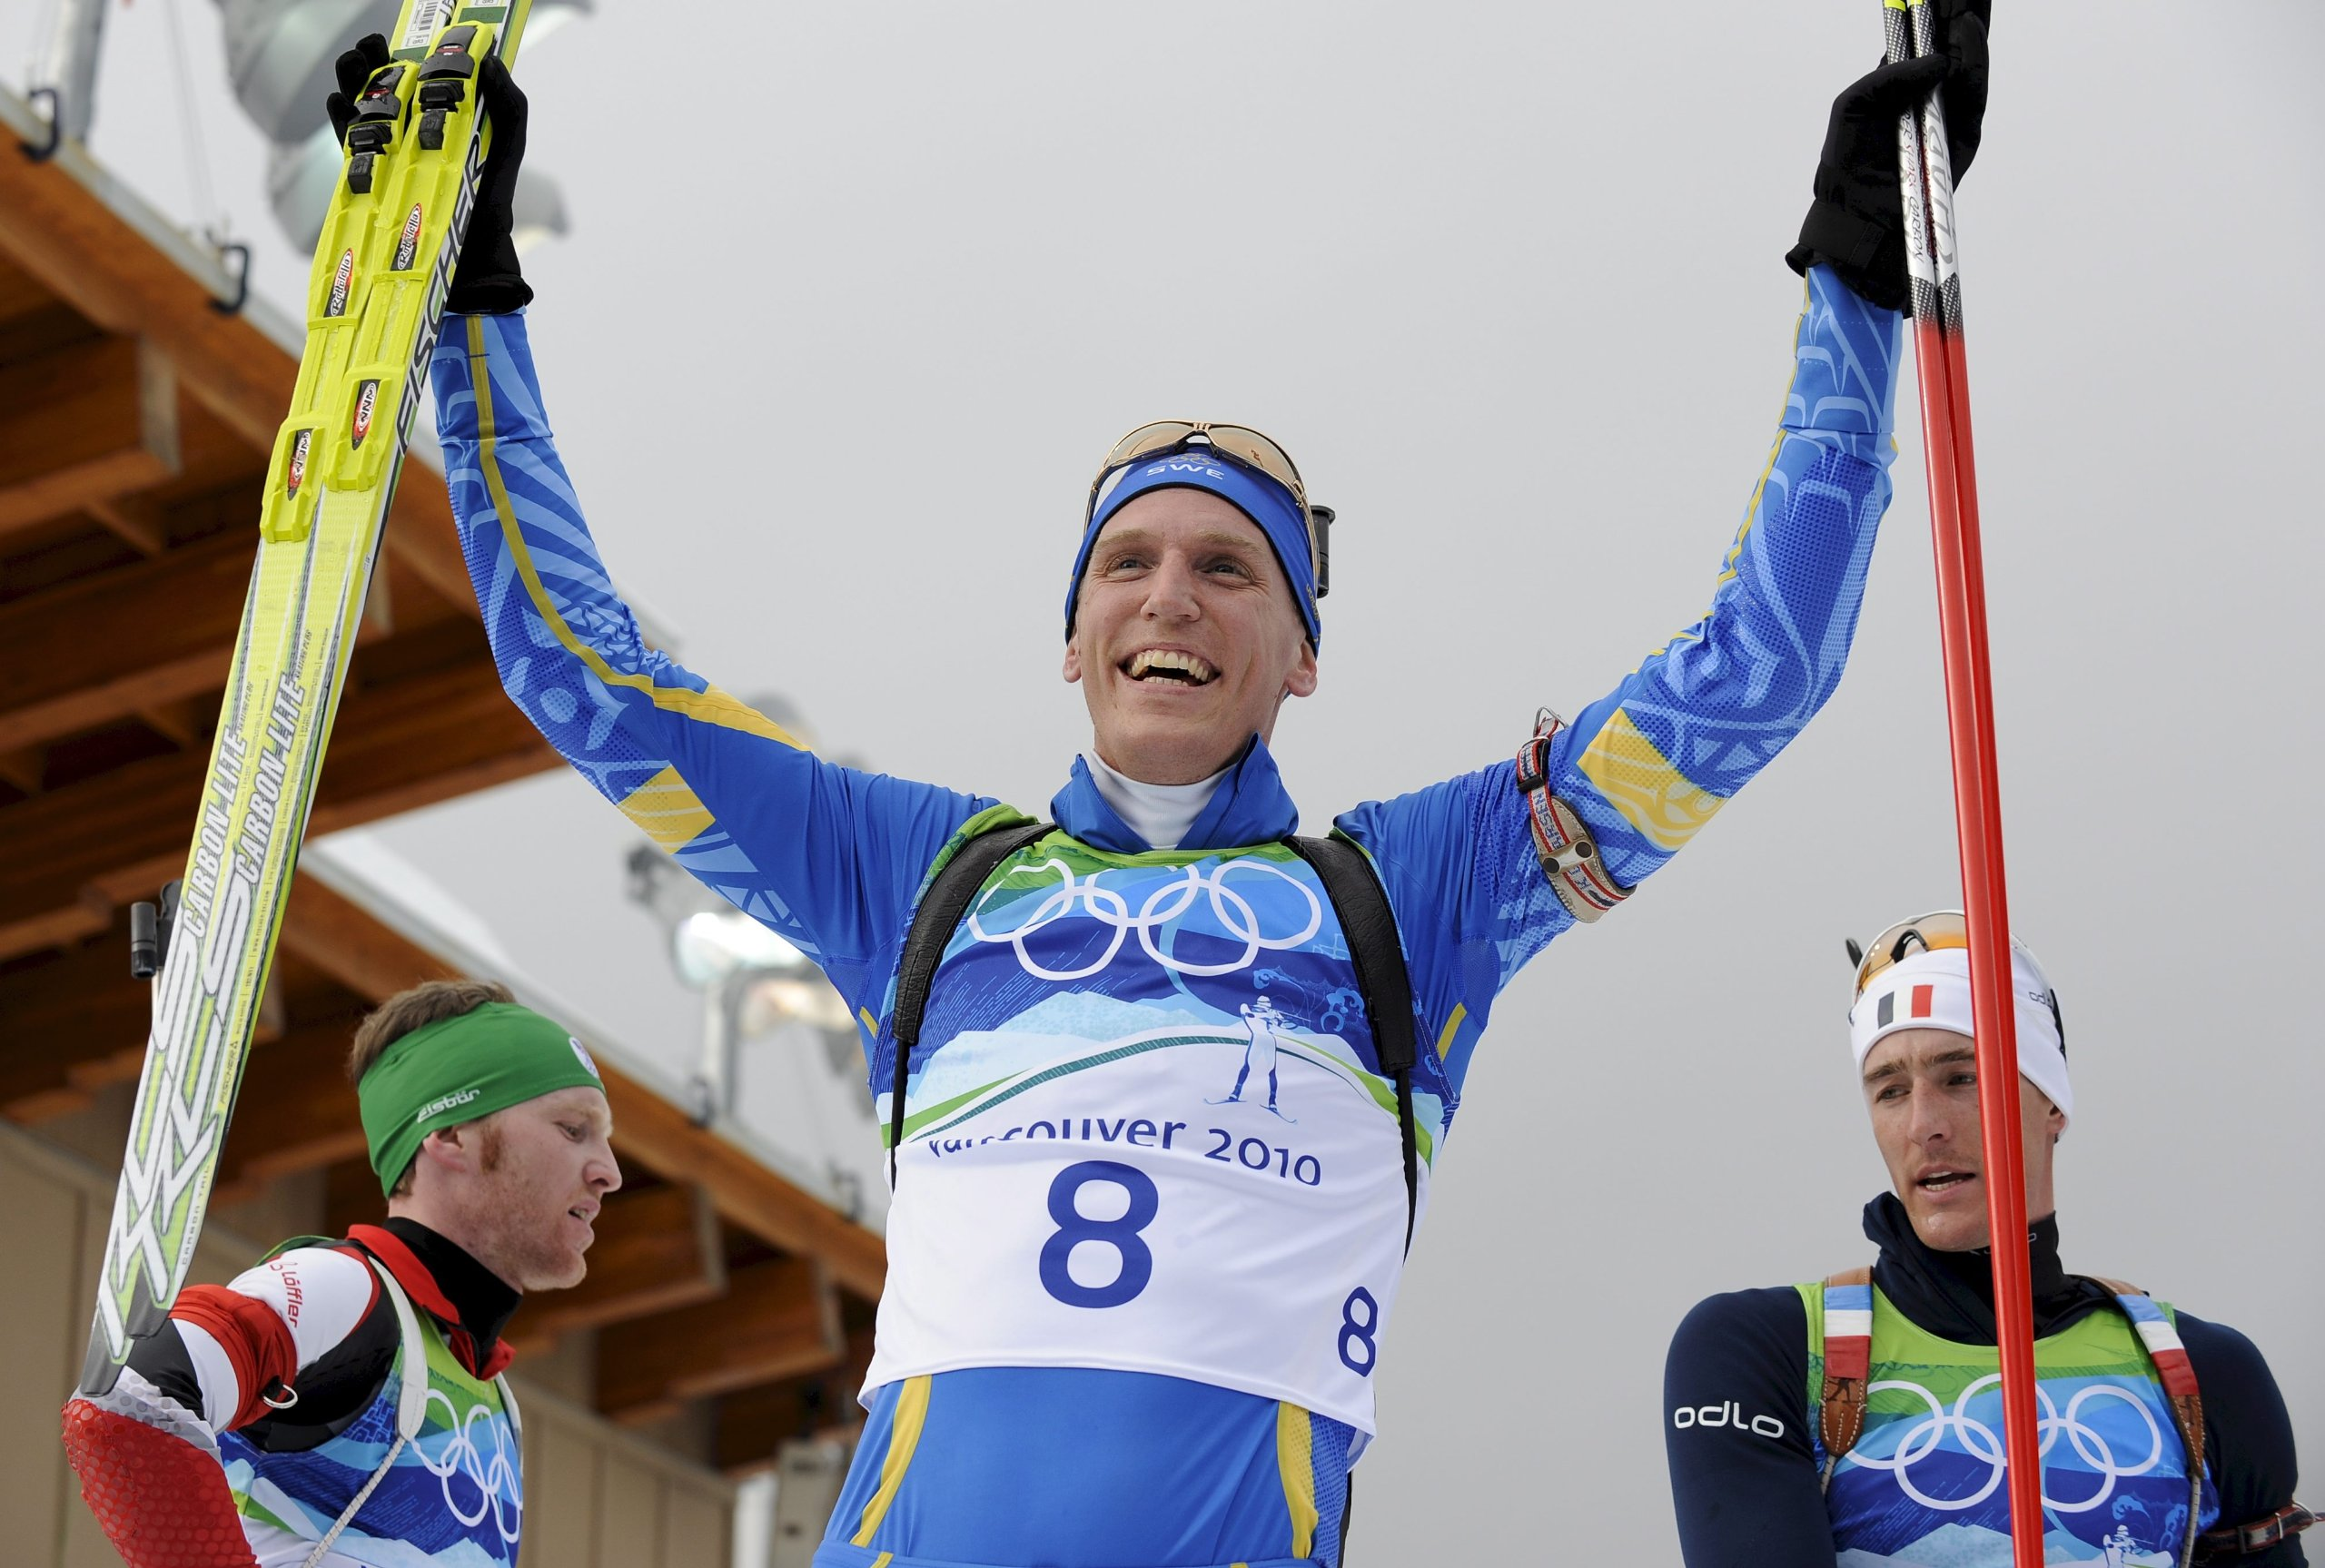 Björn Ferry holt Gold in der 12,5 km Verfolgung